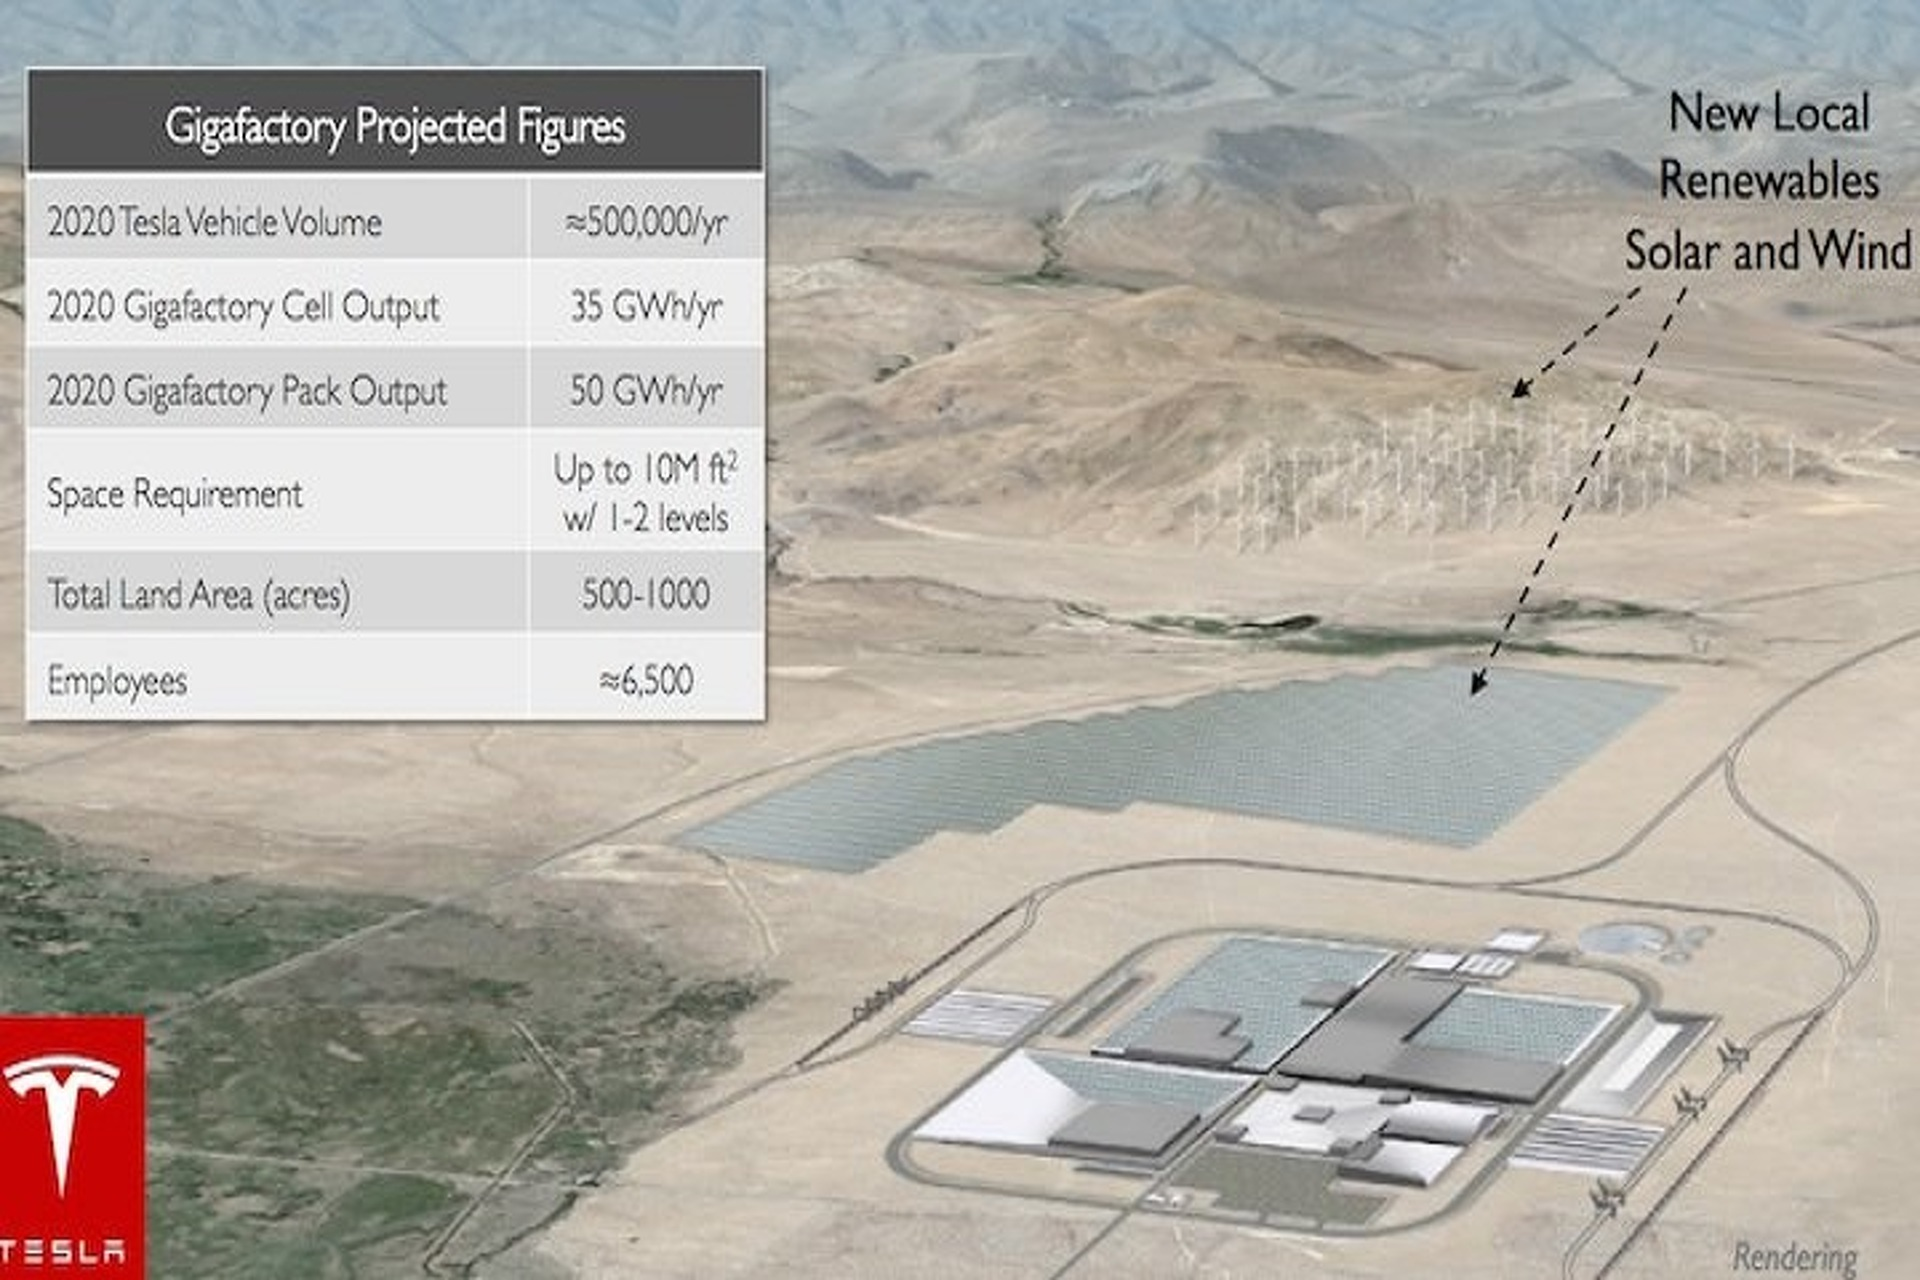 What Really Happened During the Tesla Gigafactory Incident?